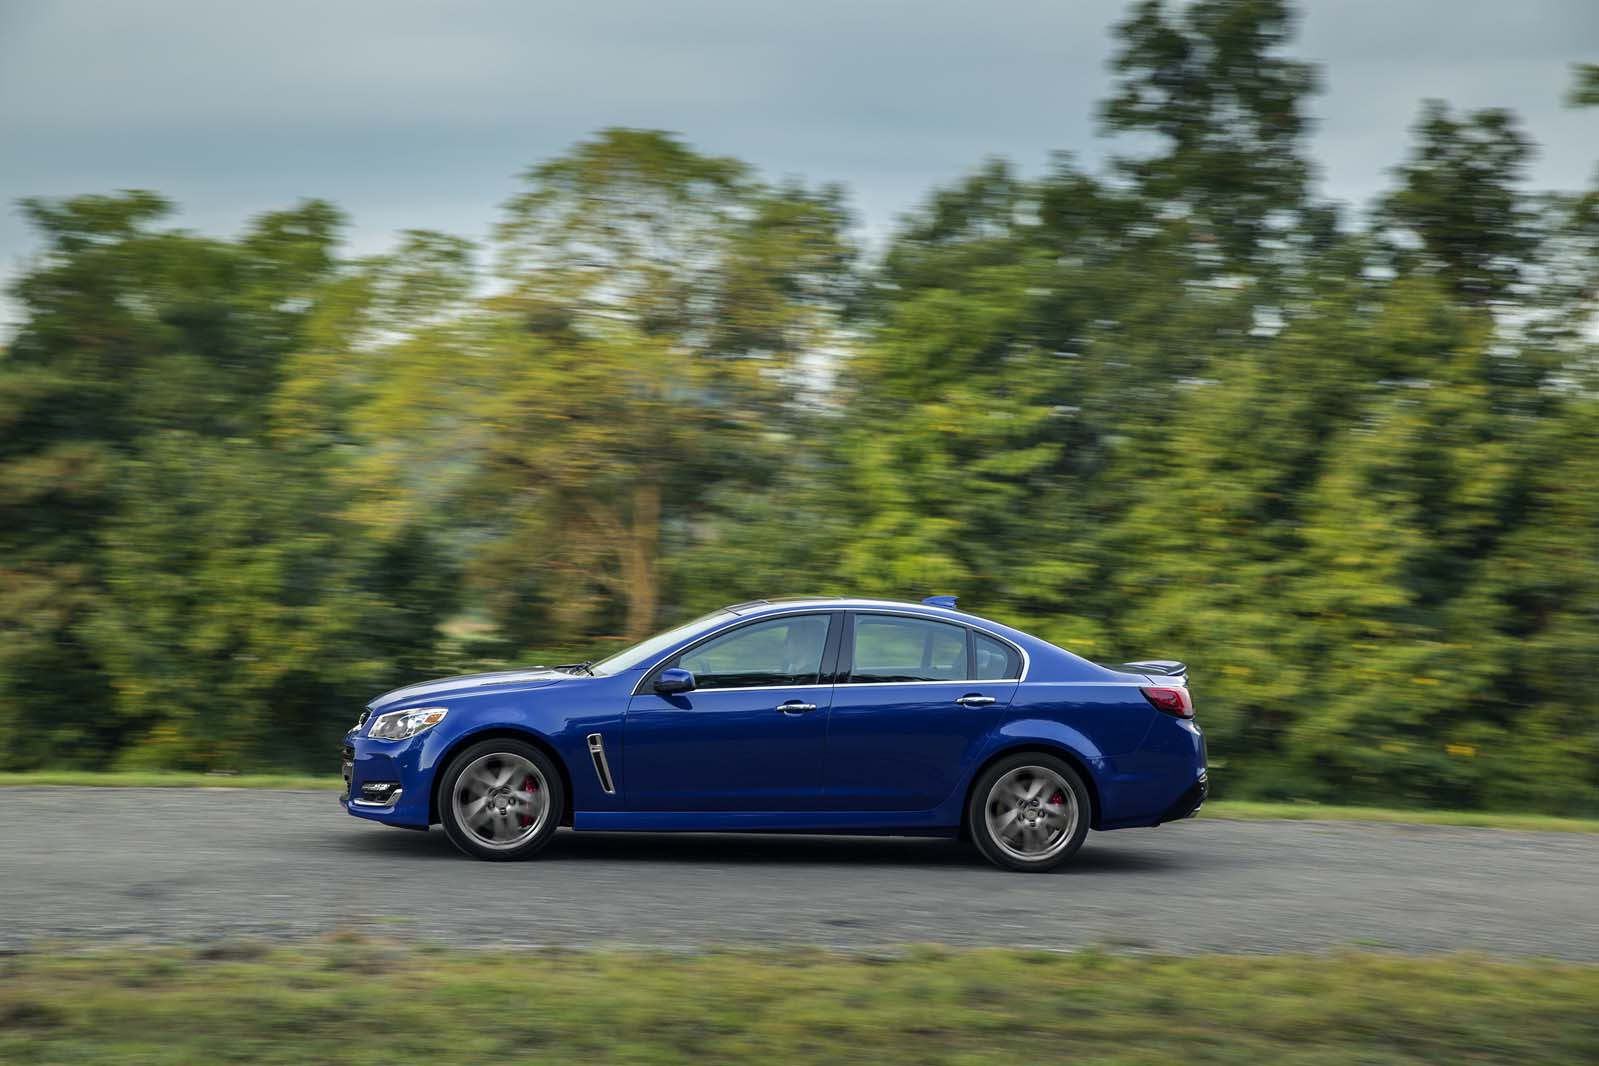 2017 Chevrolet SS (Chevy) Review, Ratings, Specs, Prices ...